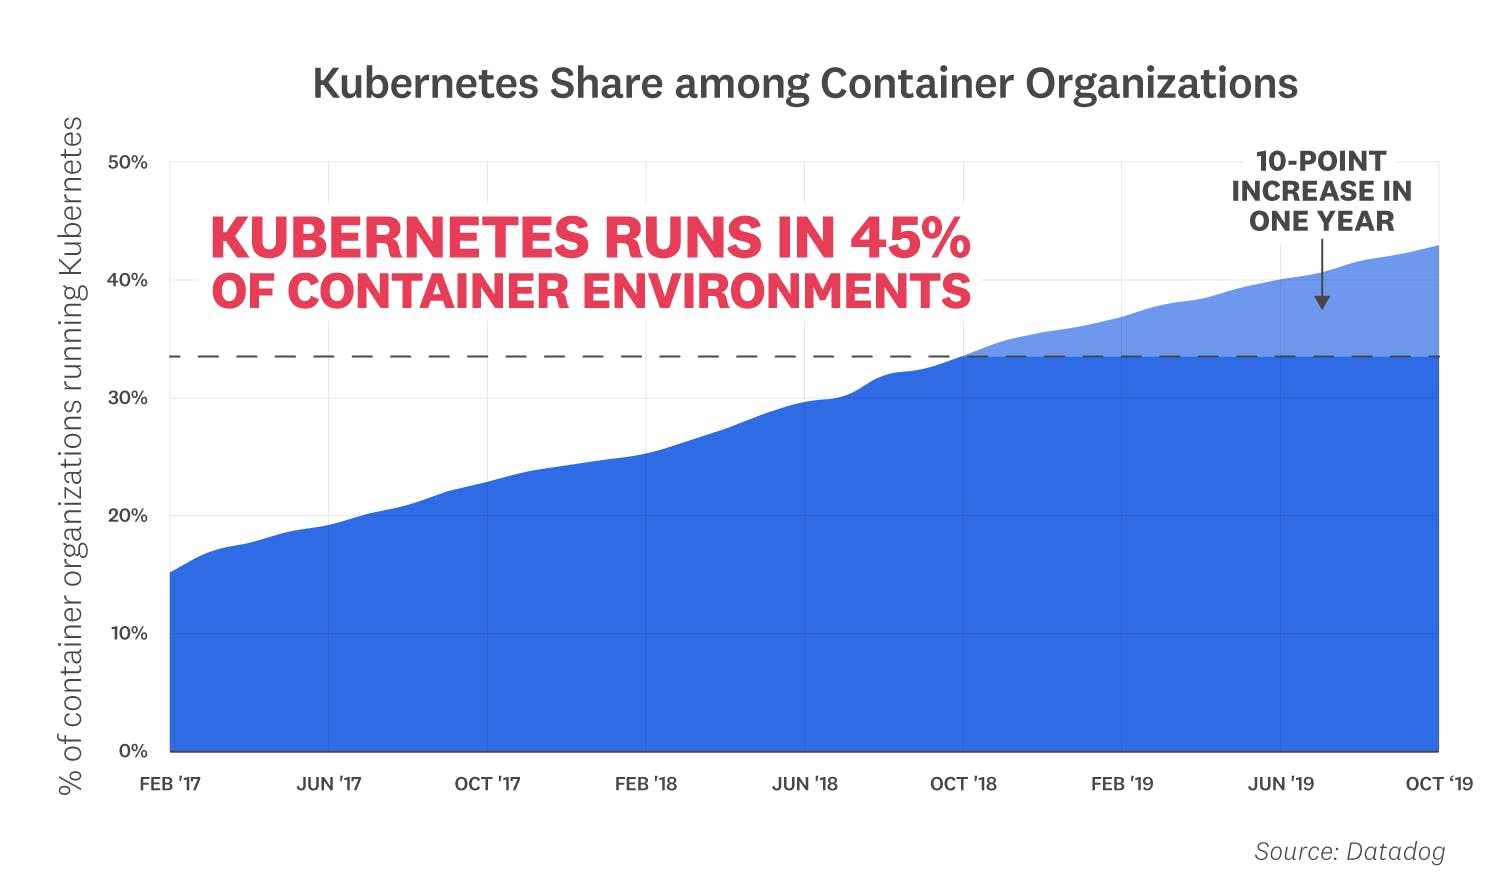 container-report-2019/container-report-2019-fact-1v2.png